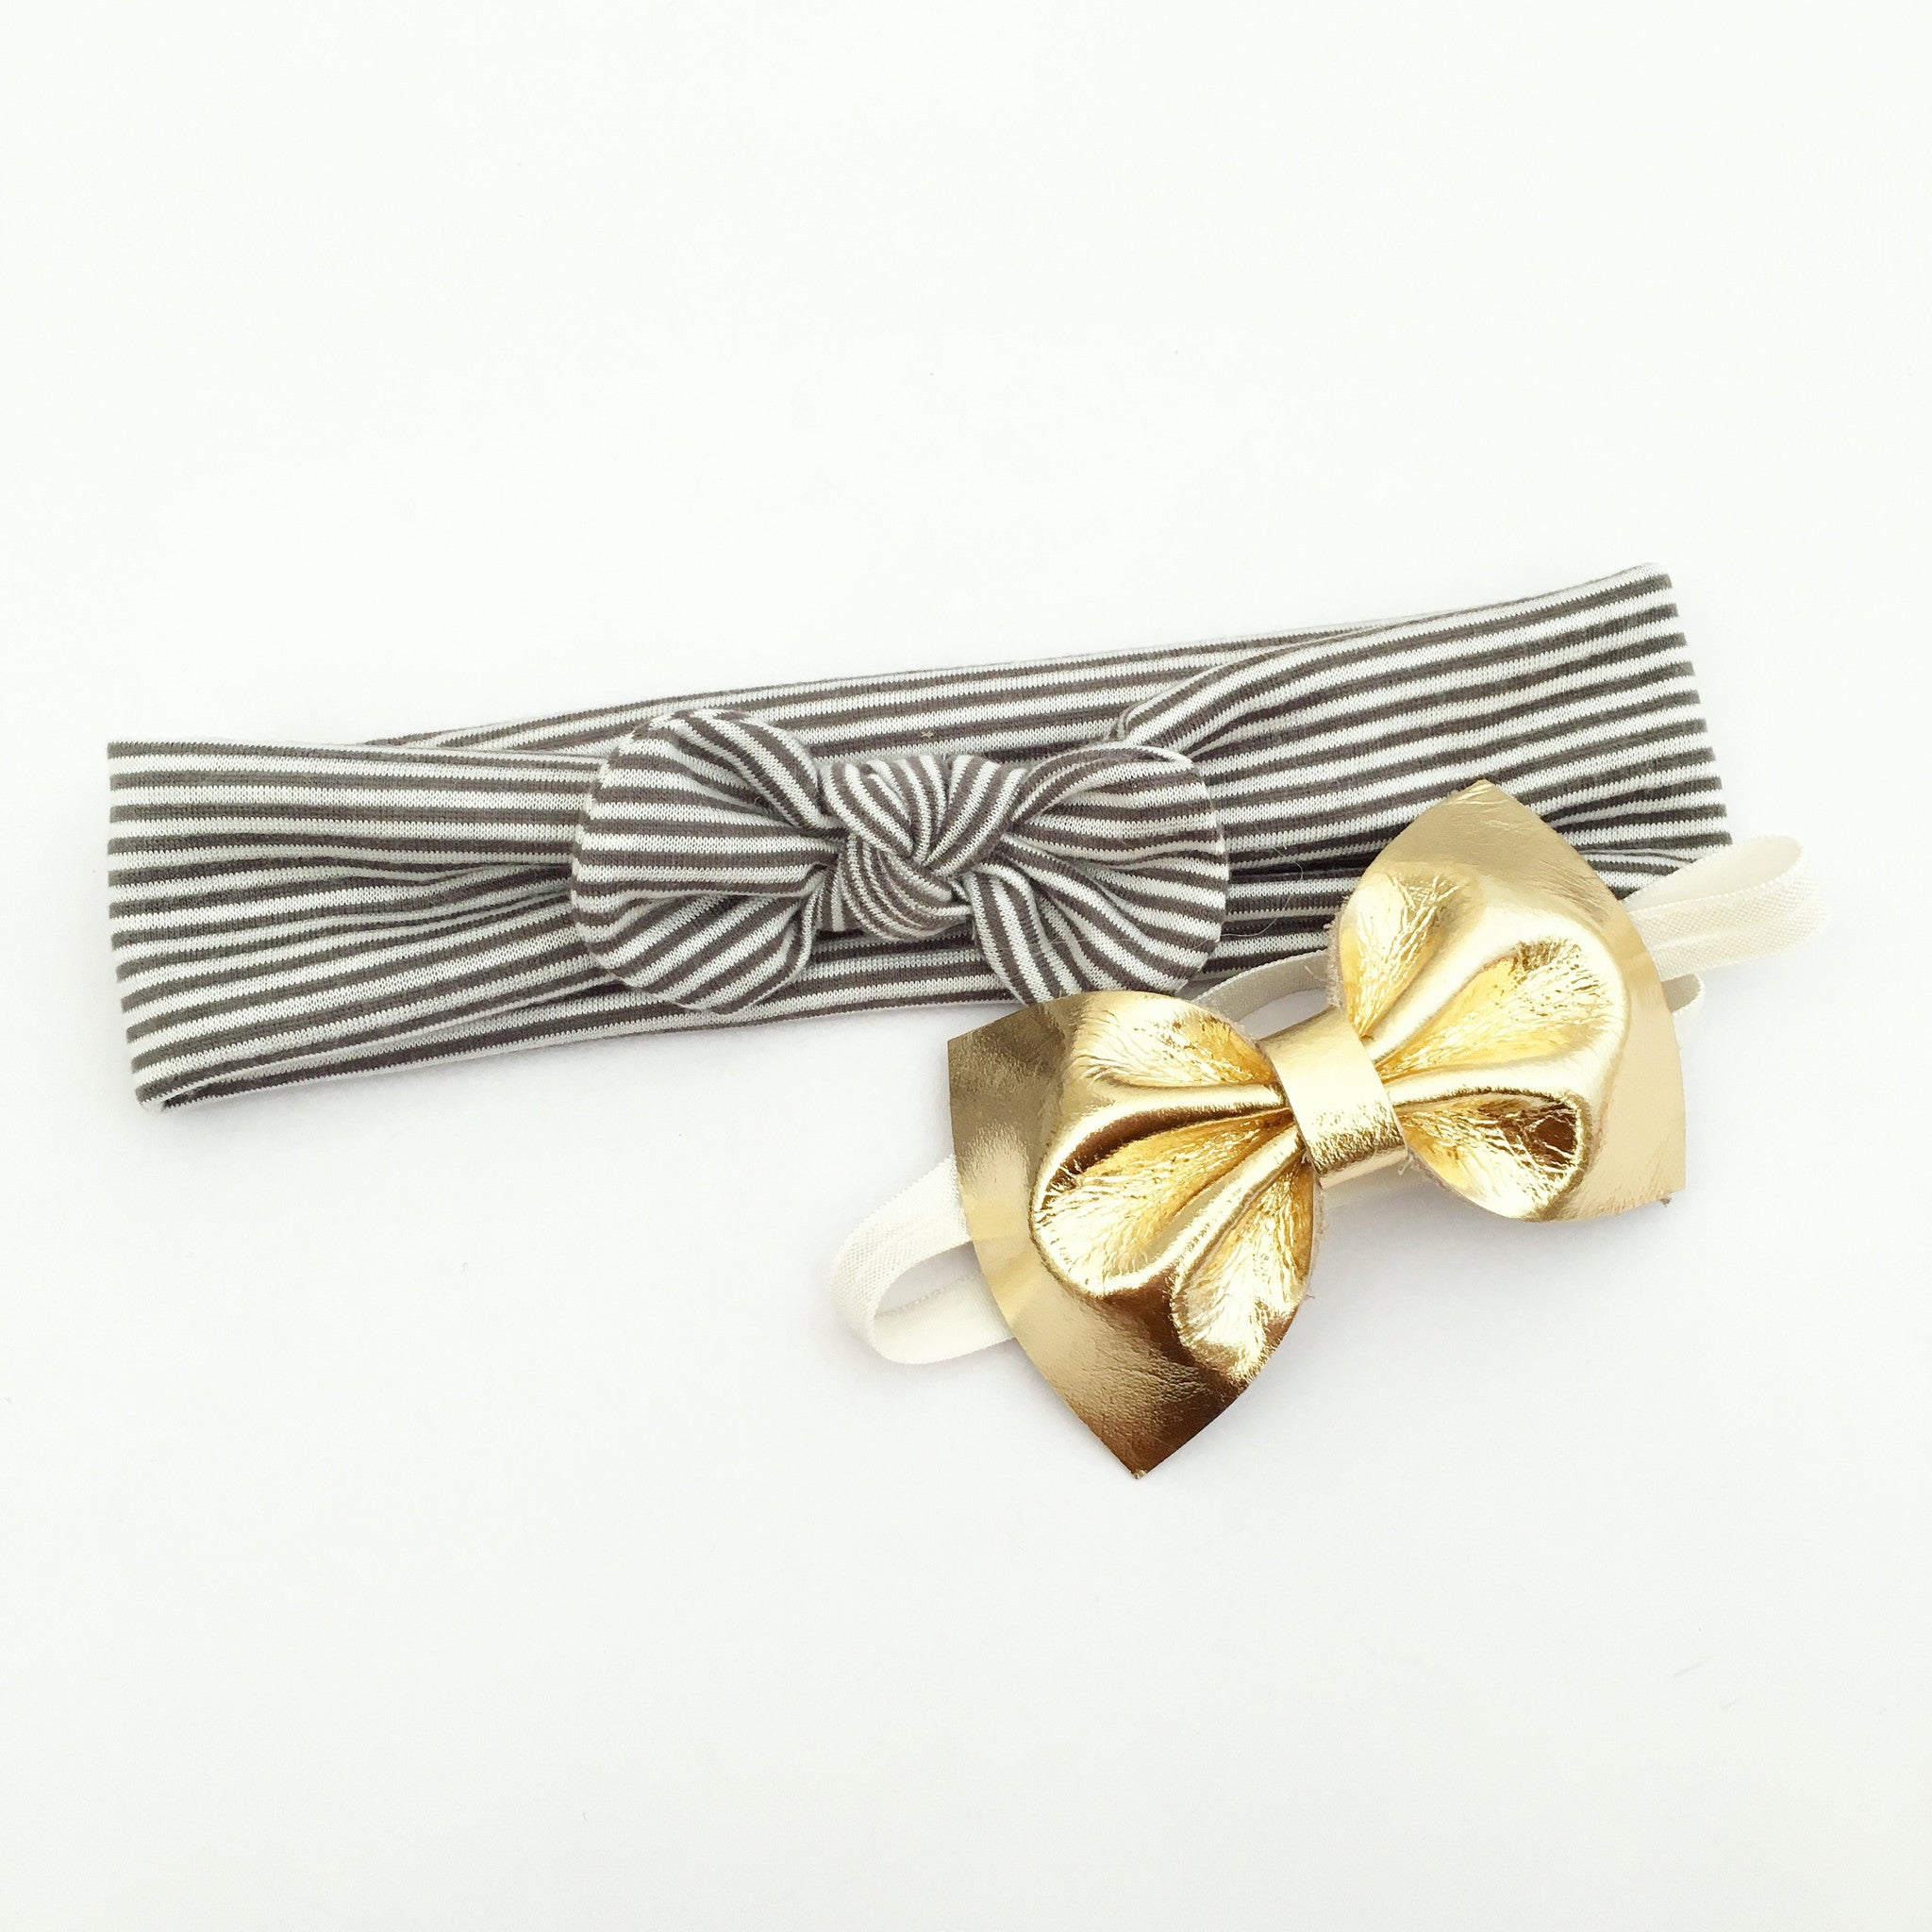 jersey knot headband - grey stripes